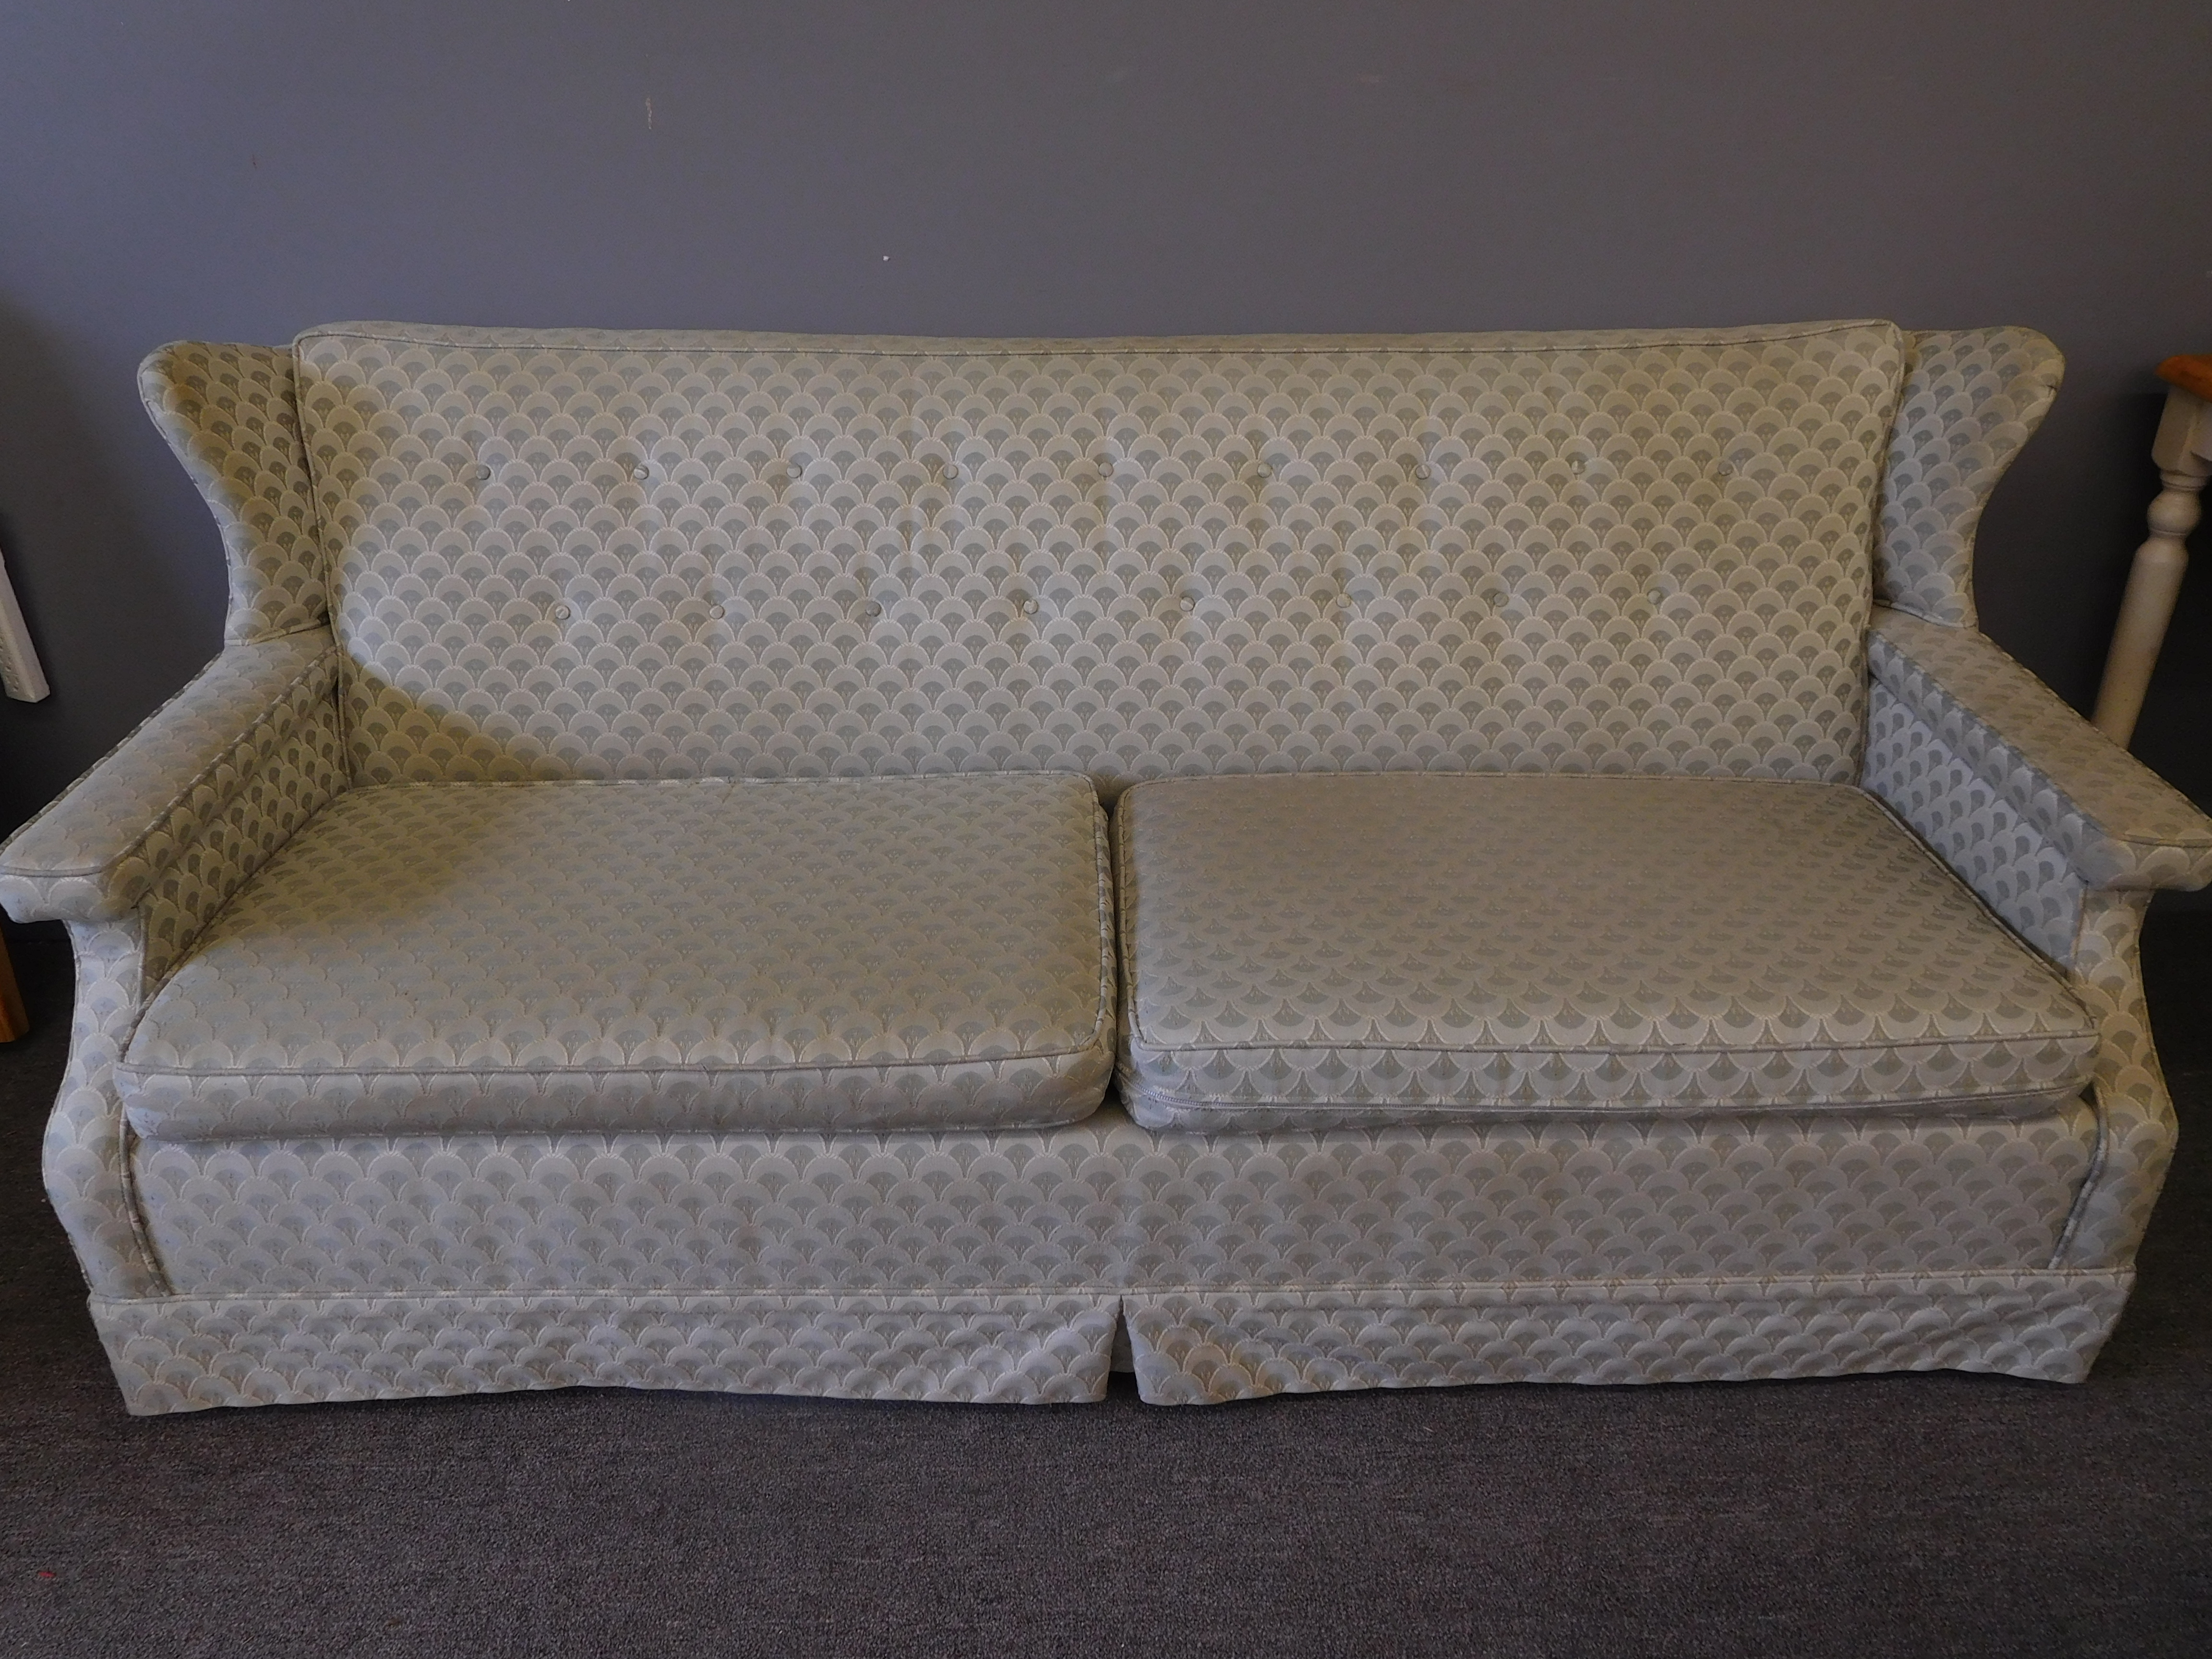 Vintage Wing Back Pale Green/Gray Sofa w/ Deco-Inspired Upholstery